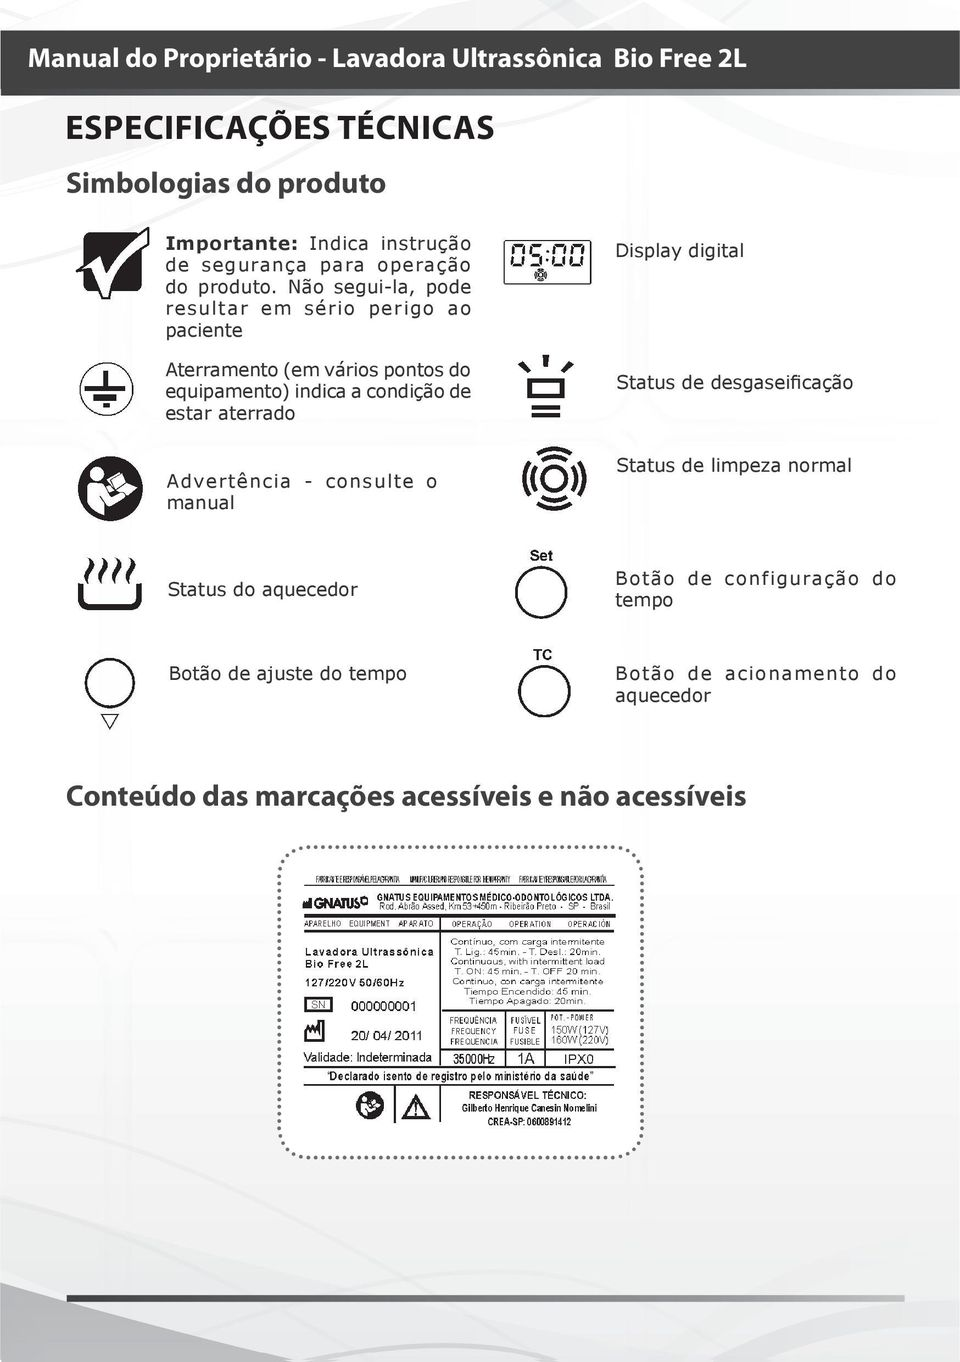 aterrado Display digital Status de desgaseificação Advertência - consulte o manual Status de limpeza normal Status do aquecedor